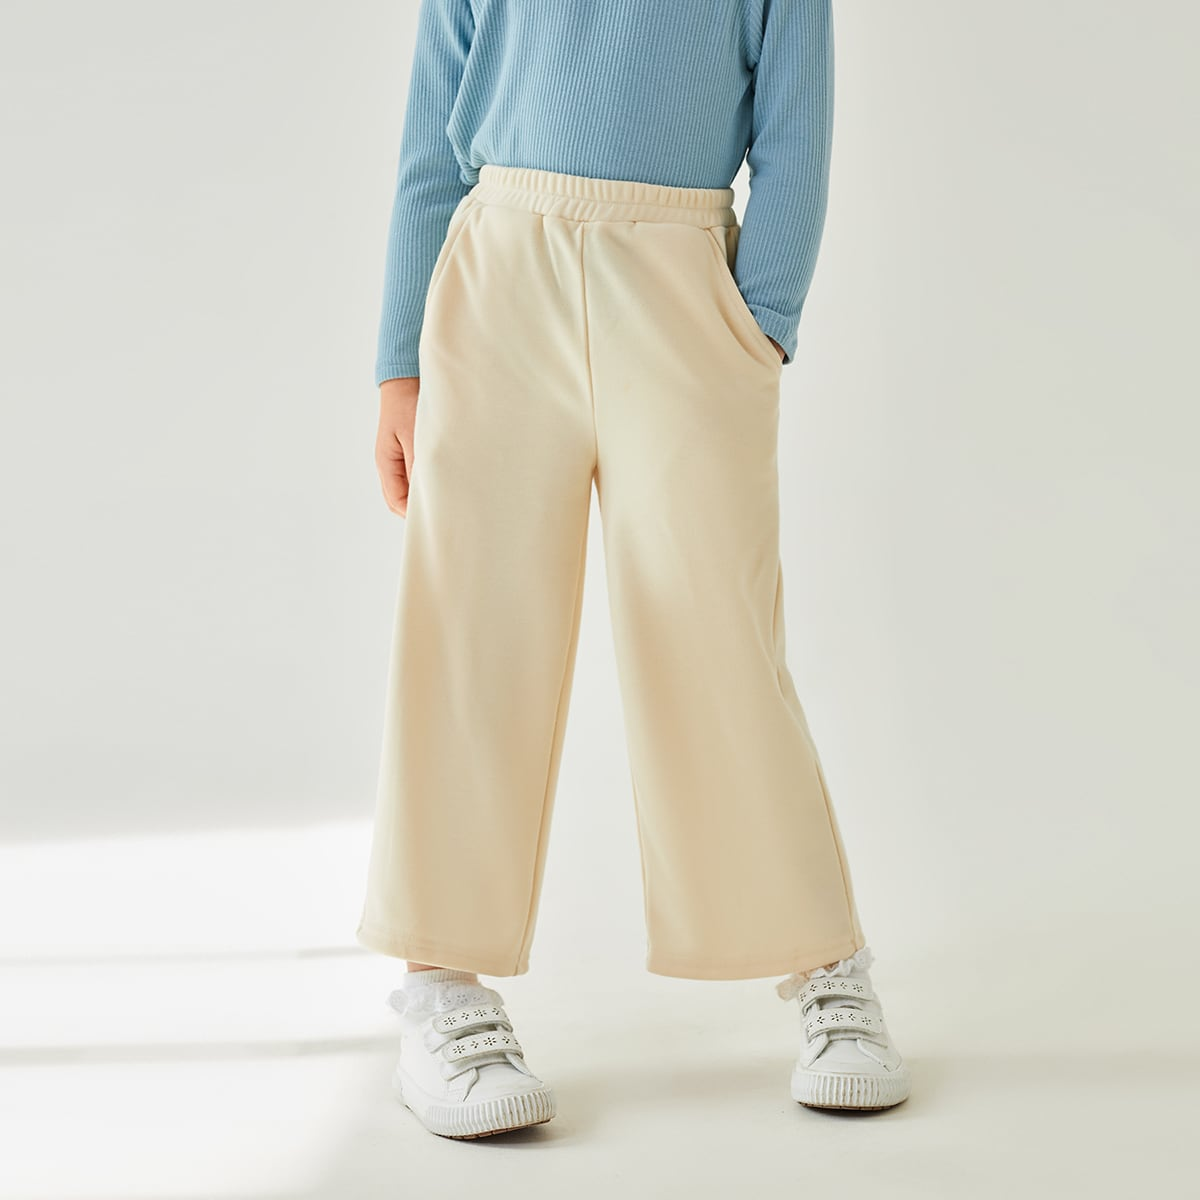 Toddler Girls Wide Leg Sweatpants, SHEIN  - buy with discount